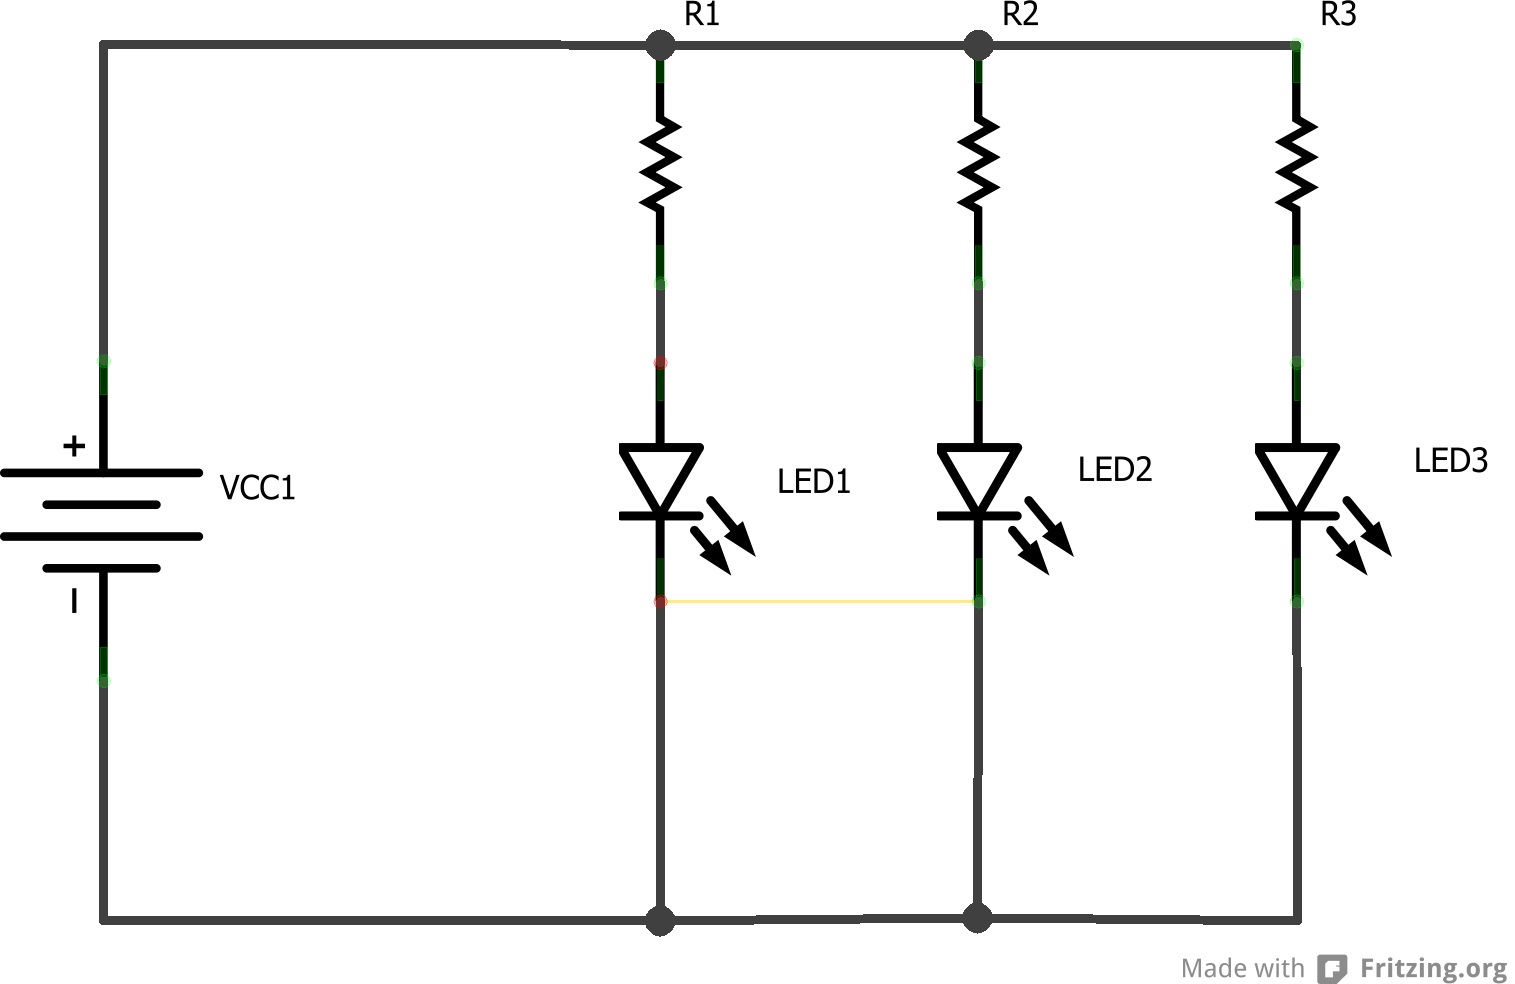 3 wire led christmas lights wiring diagram cool 3 way switch outlet wiring diagram 3 wire [ 1515 x 984 Pixel ]